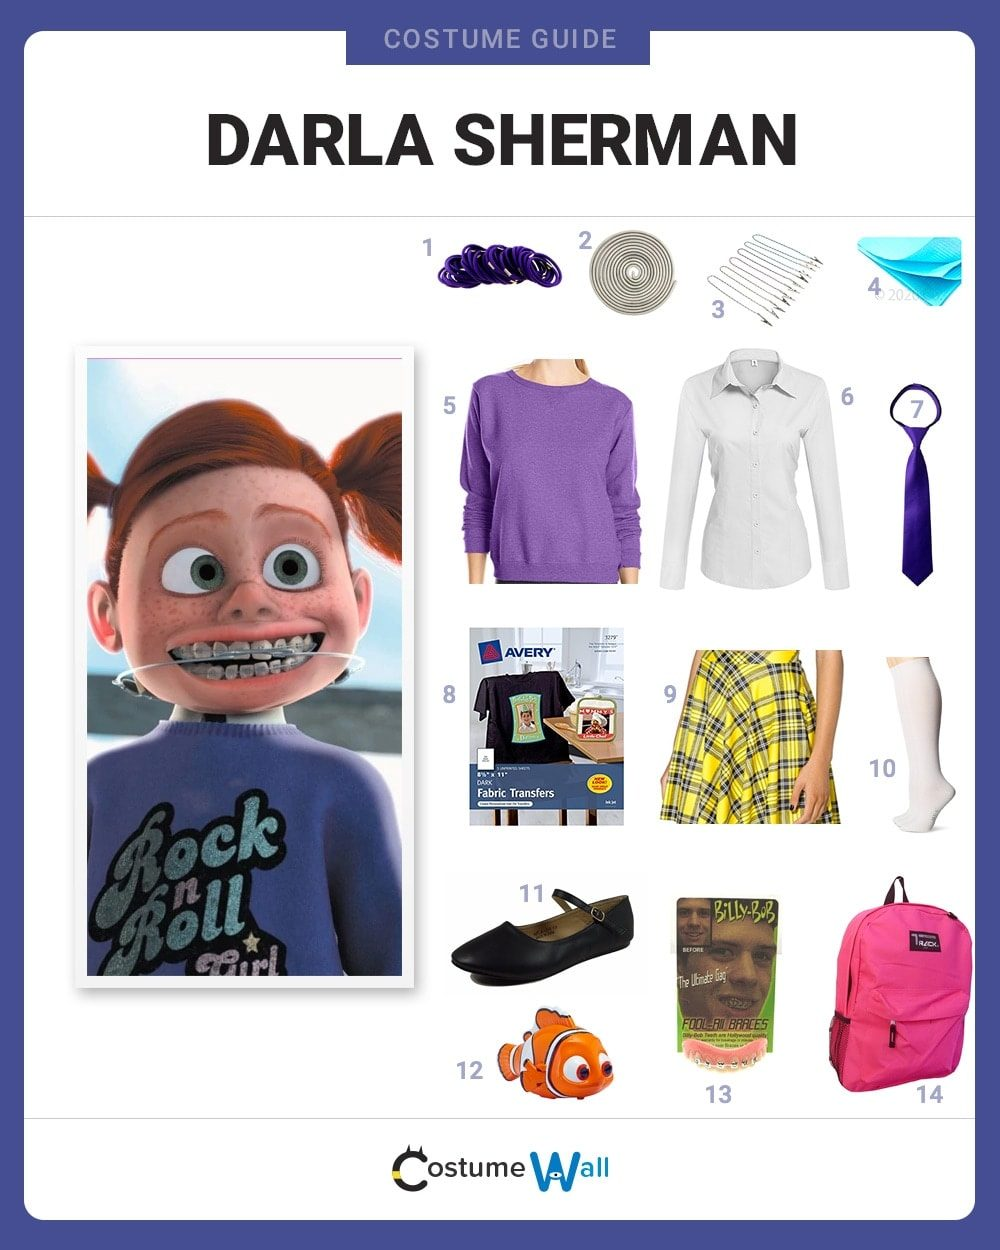 Darla Sherman Costume Guide